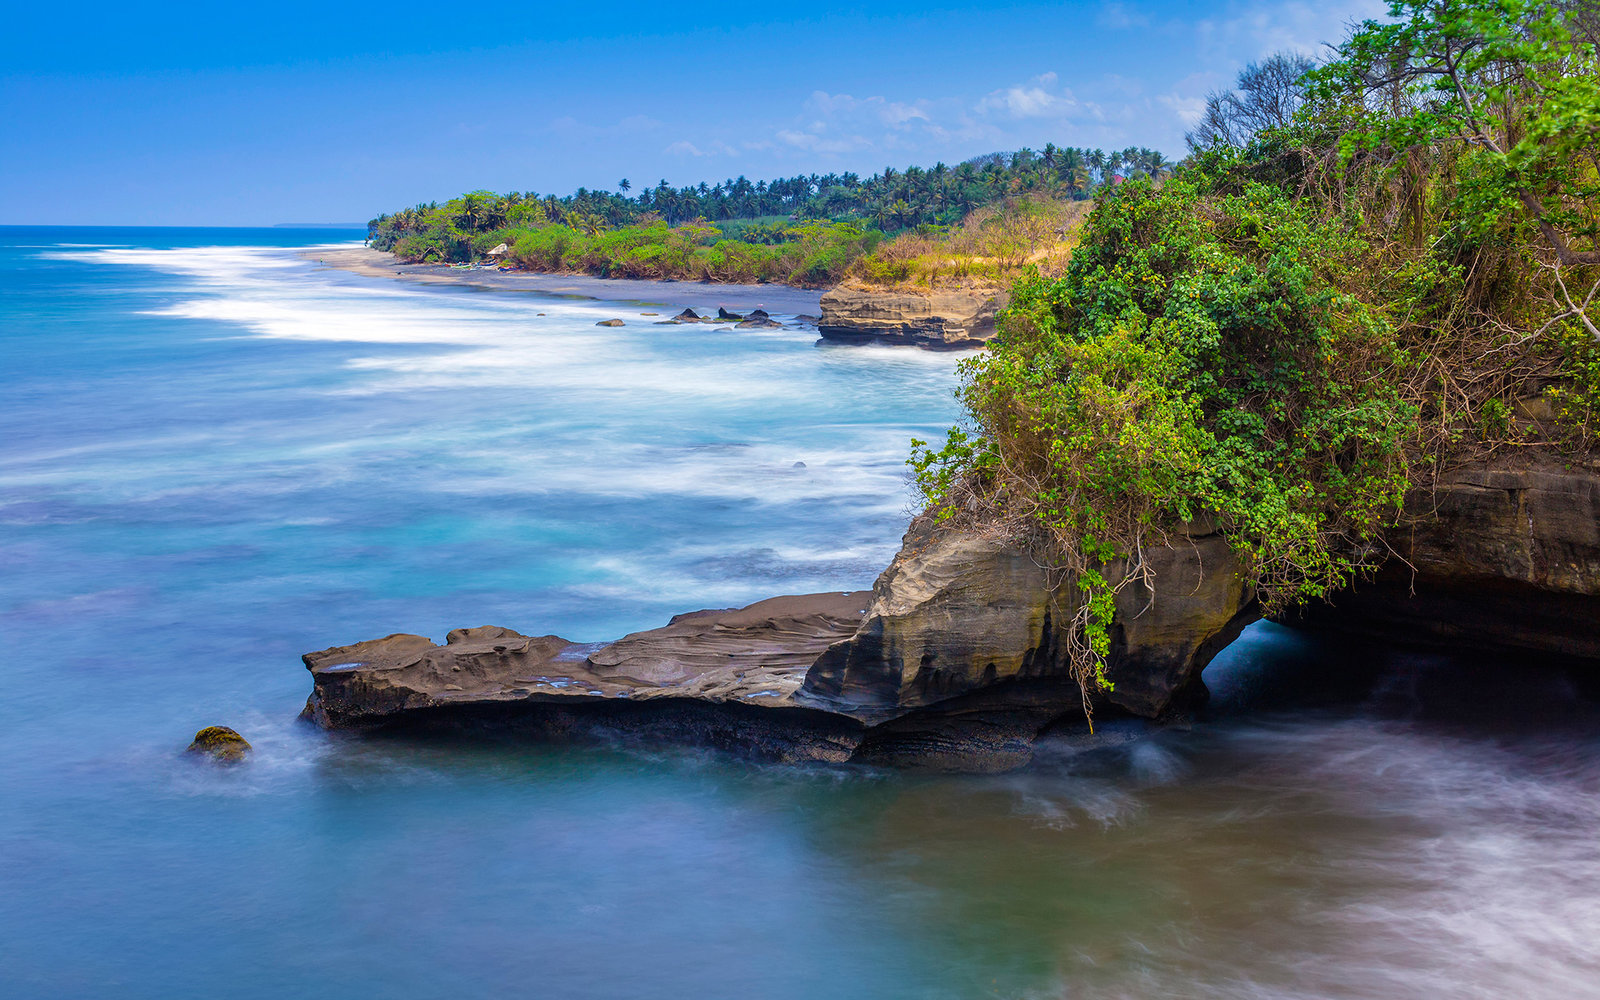 Indonesia, Bali, Coast, View of Balian beach